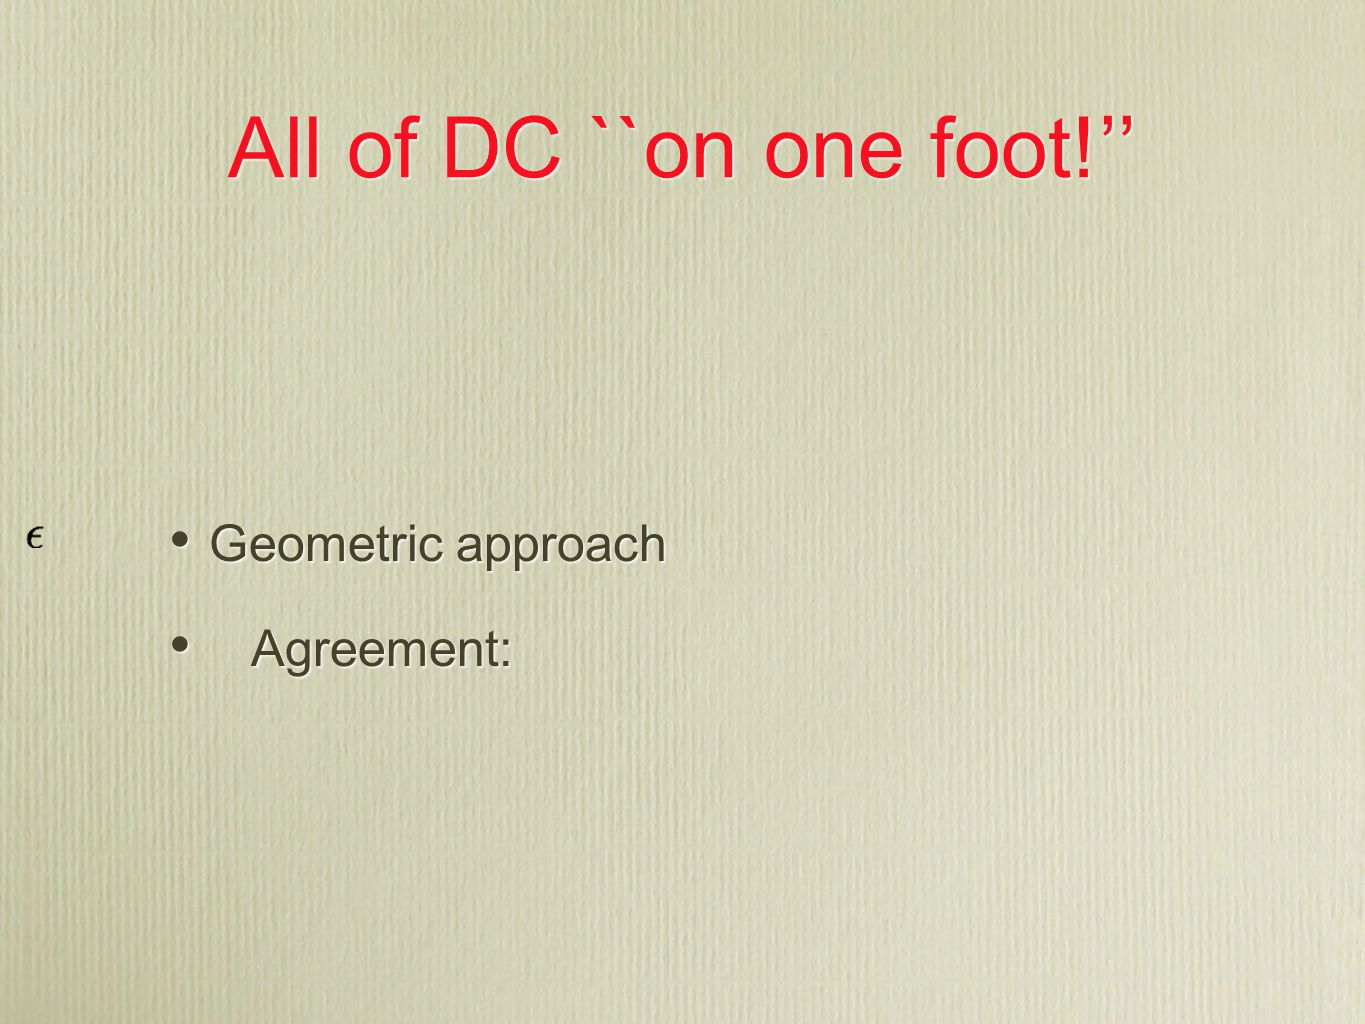 All of DC ``on one foot!'' Geometric approach Agreement: Geometric approach Agreement: